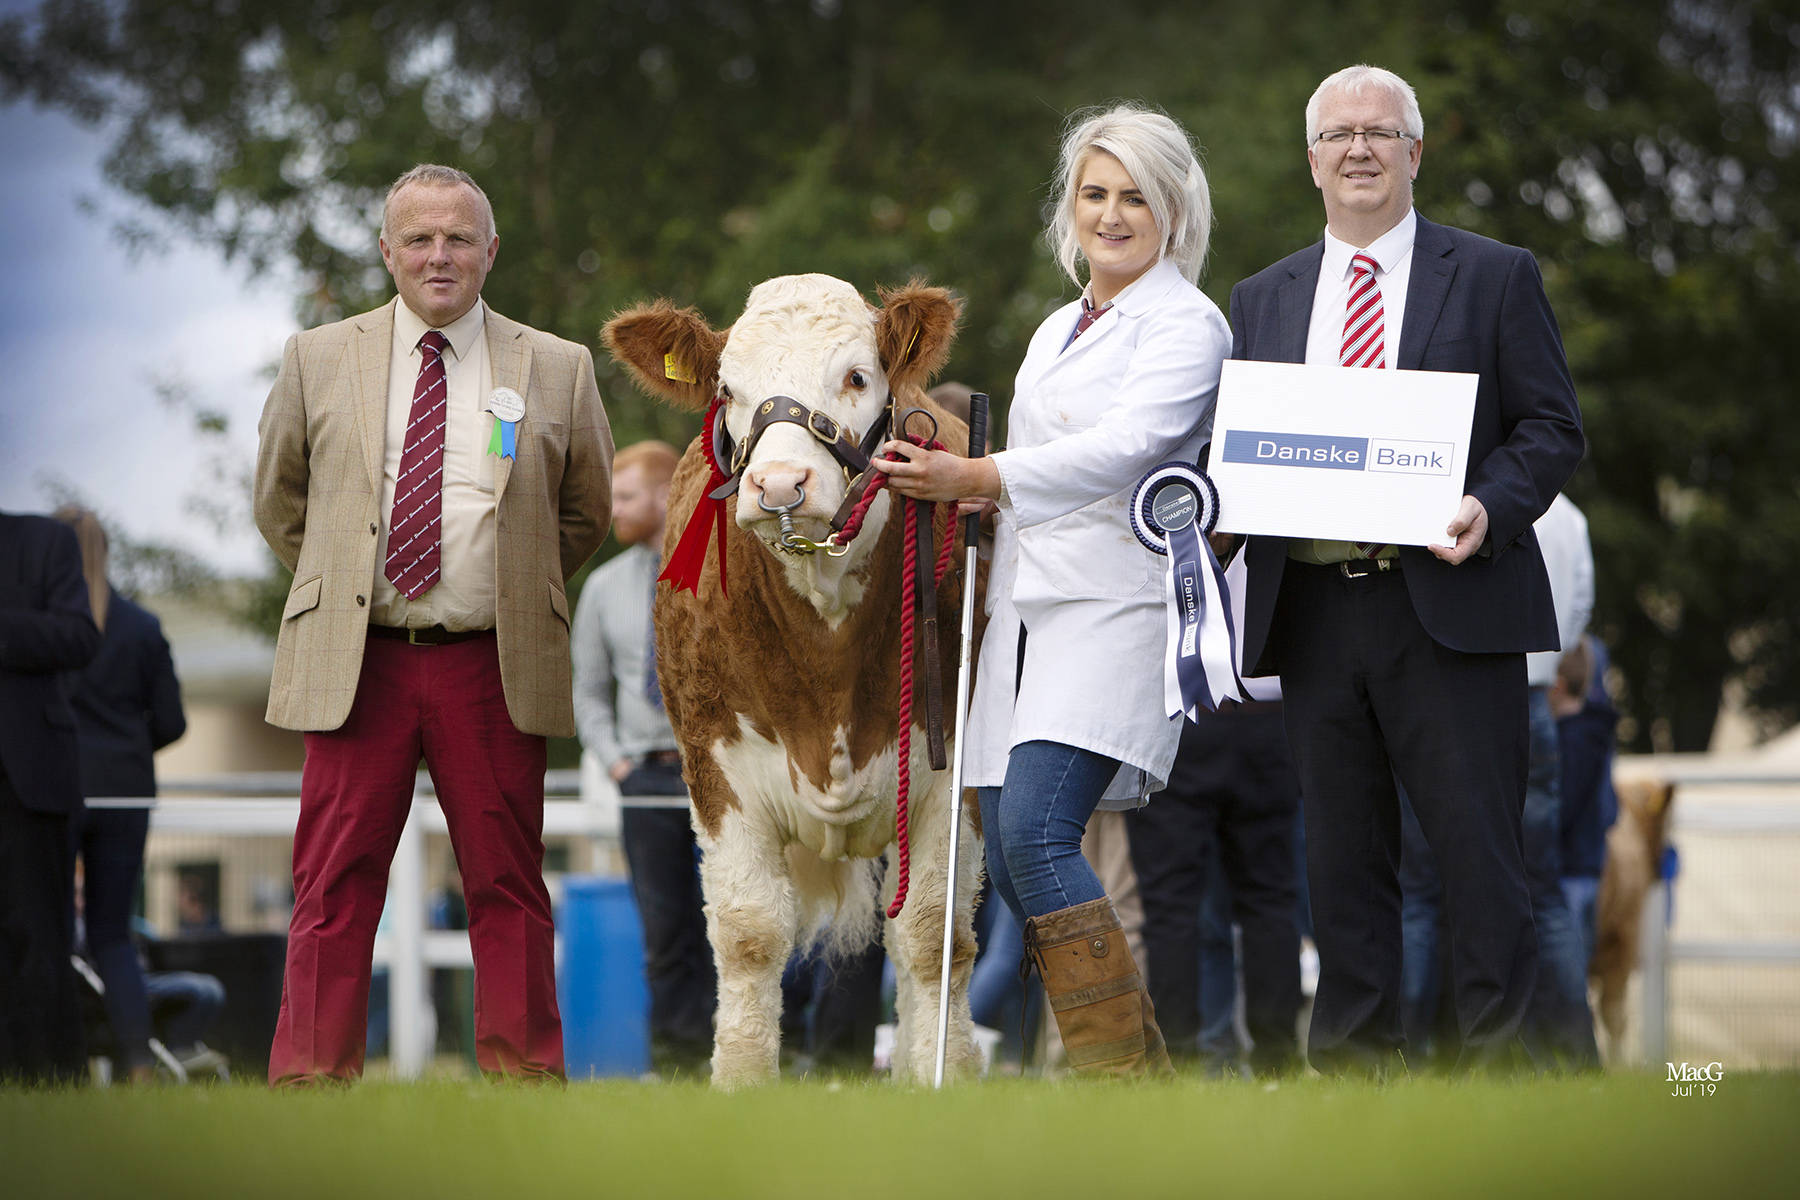 Julie Stinson, Enniskillen, exhibited the reserve junior champion Cleenagh Jessica. Making the presentation are Michael Barlow, judge; and Kilian McDonnell, Danske Bank.